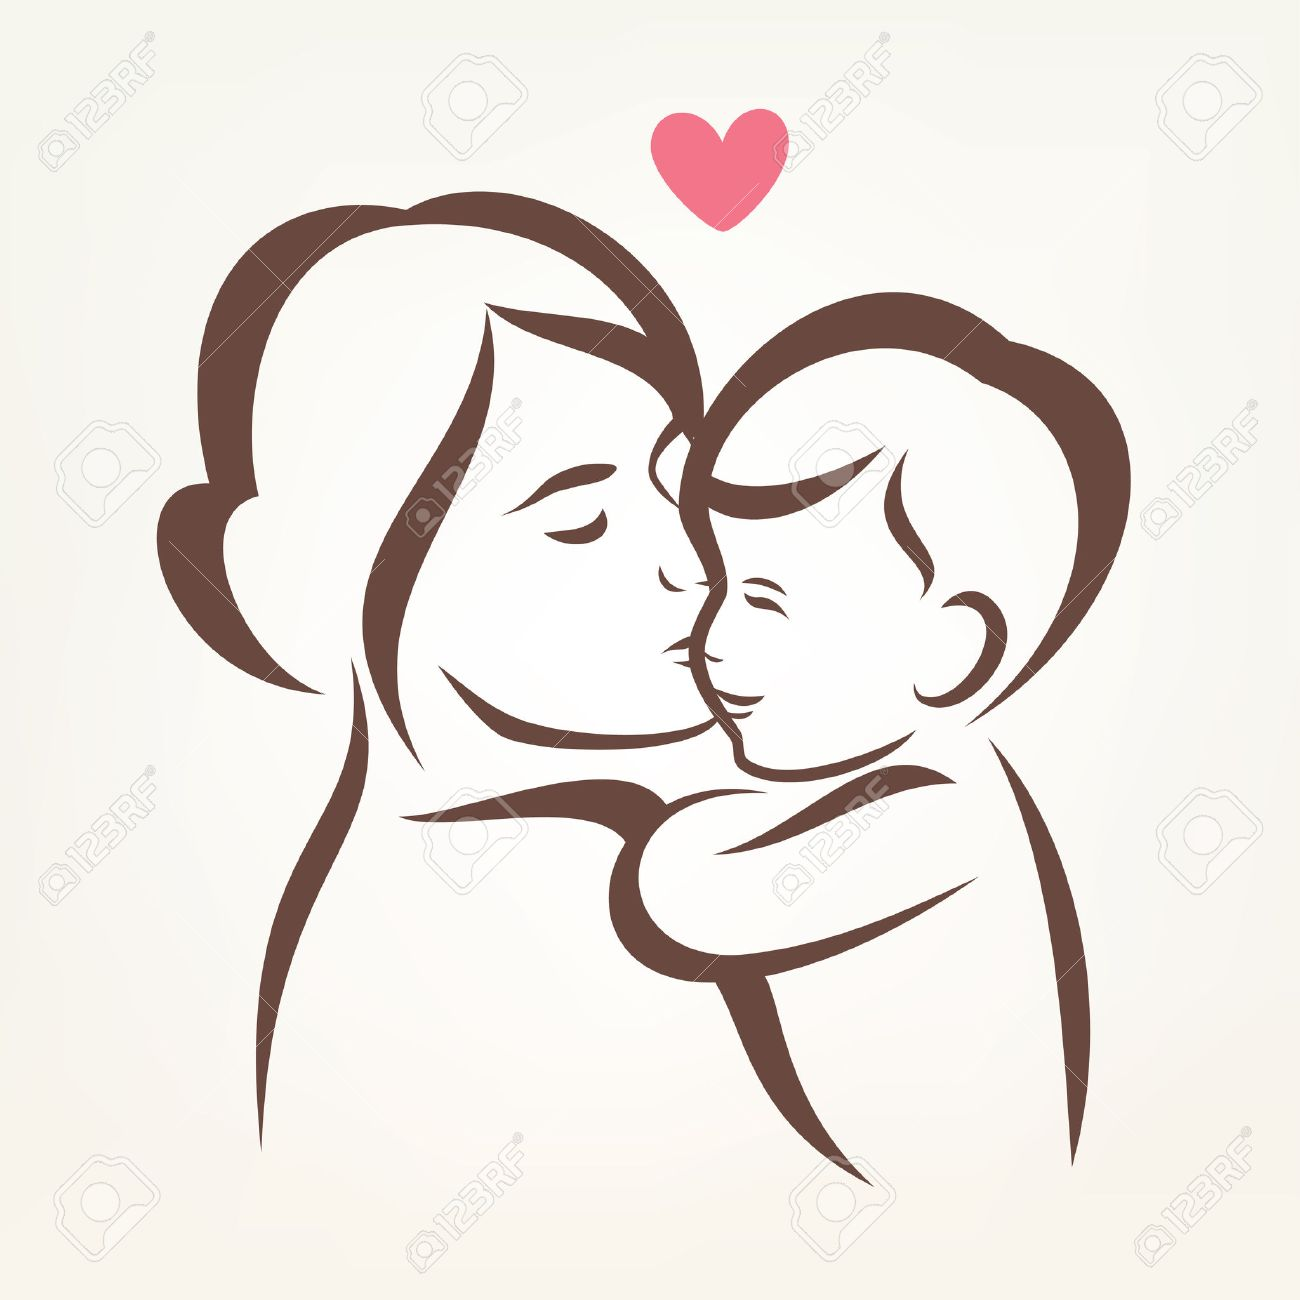 mother and son stylized vector silhouette, outlined sketch of mom and child - 38998743